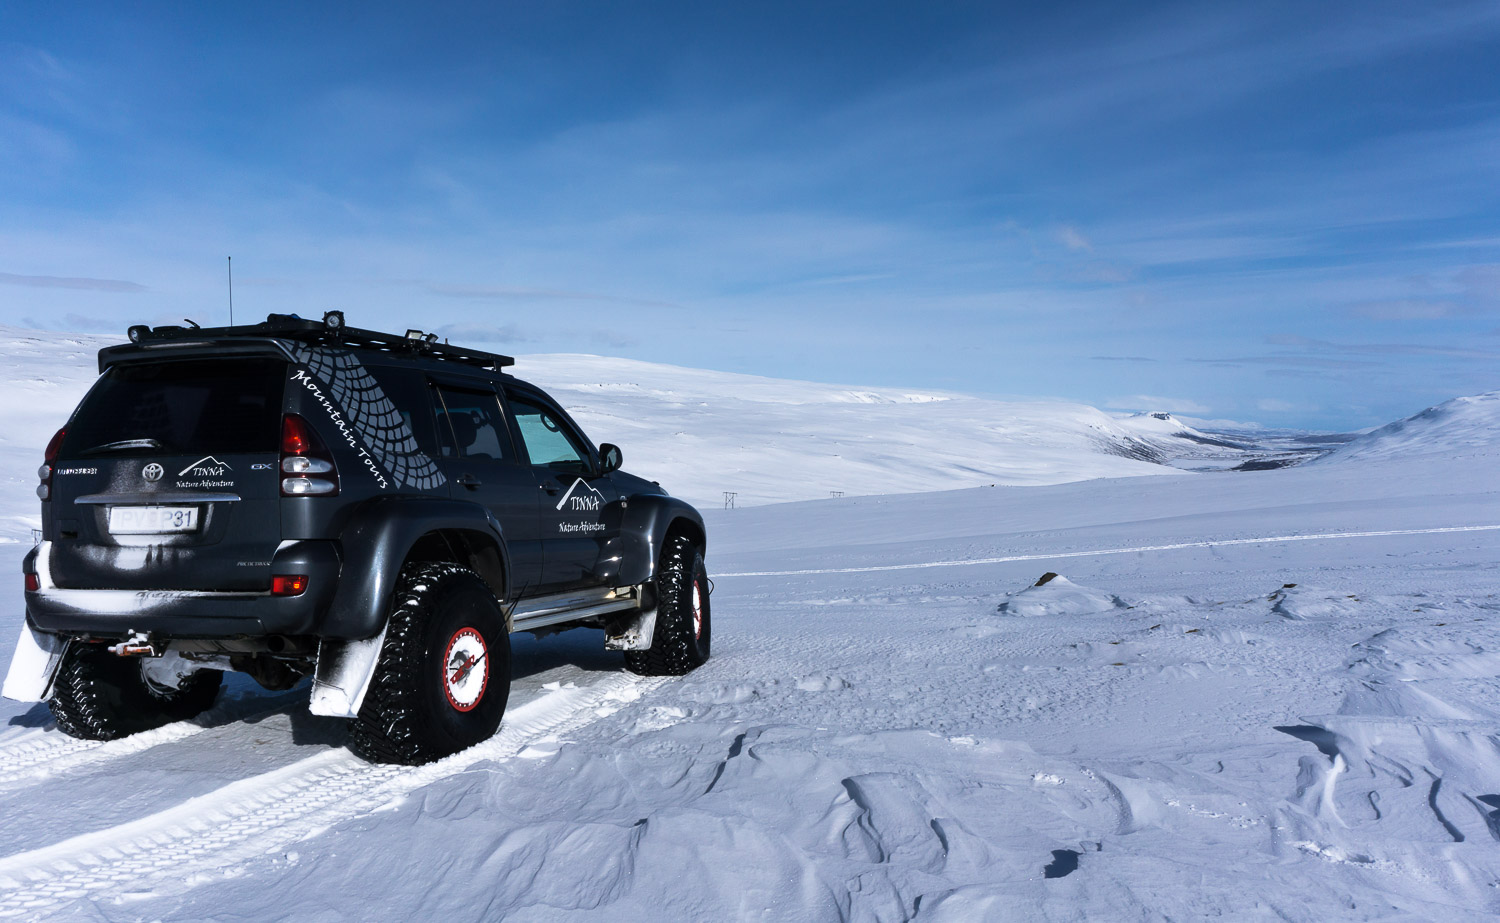 Snow, Super Jeep, Guided tours, East Iceland, Austurland, mountain, snow, media